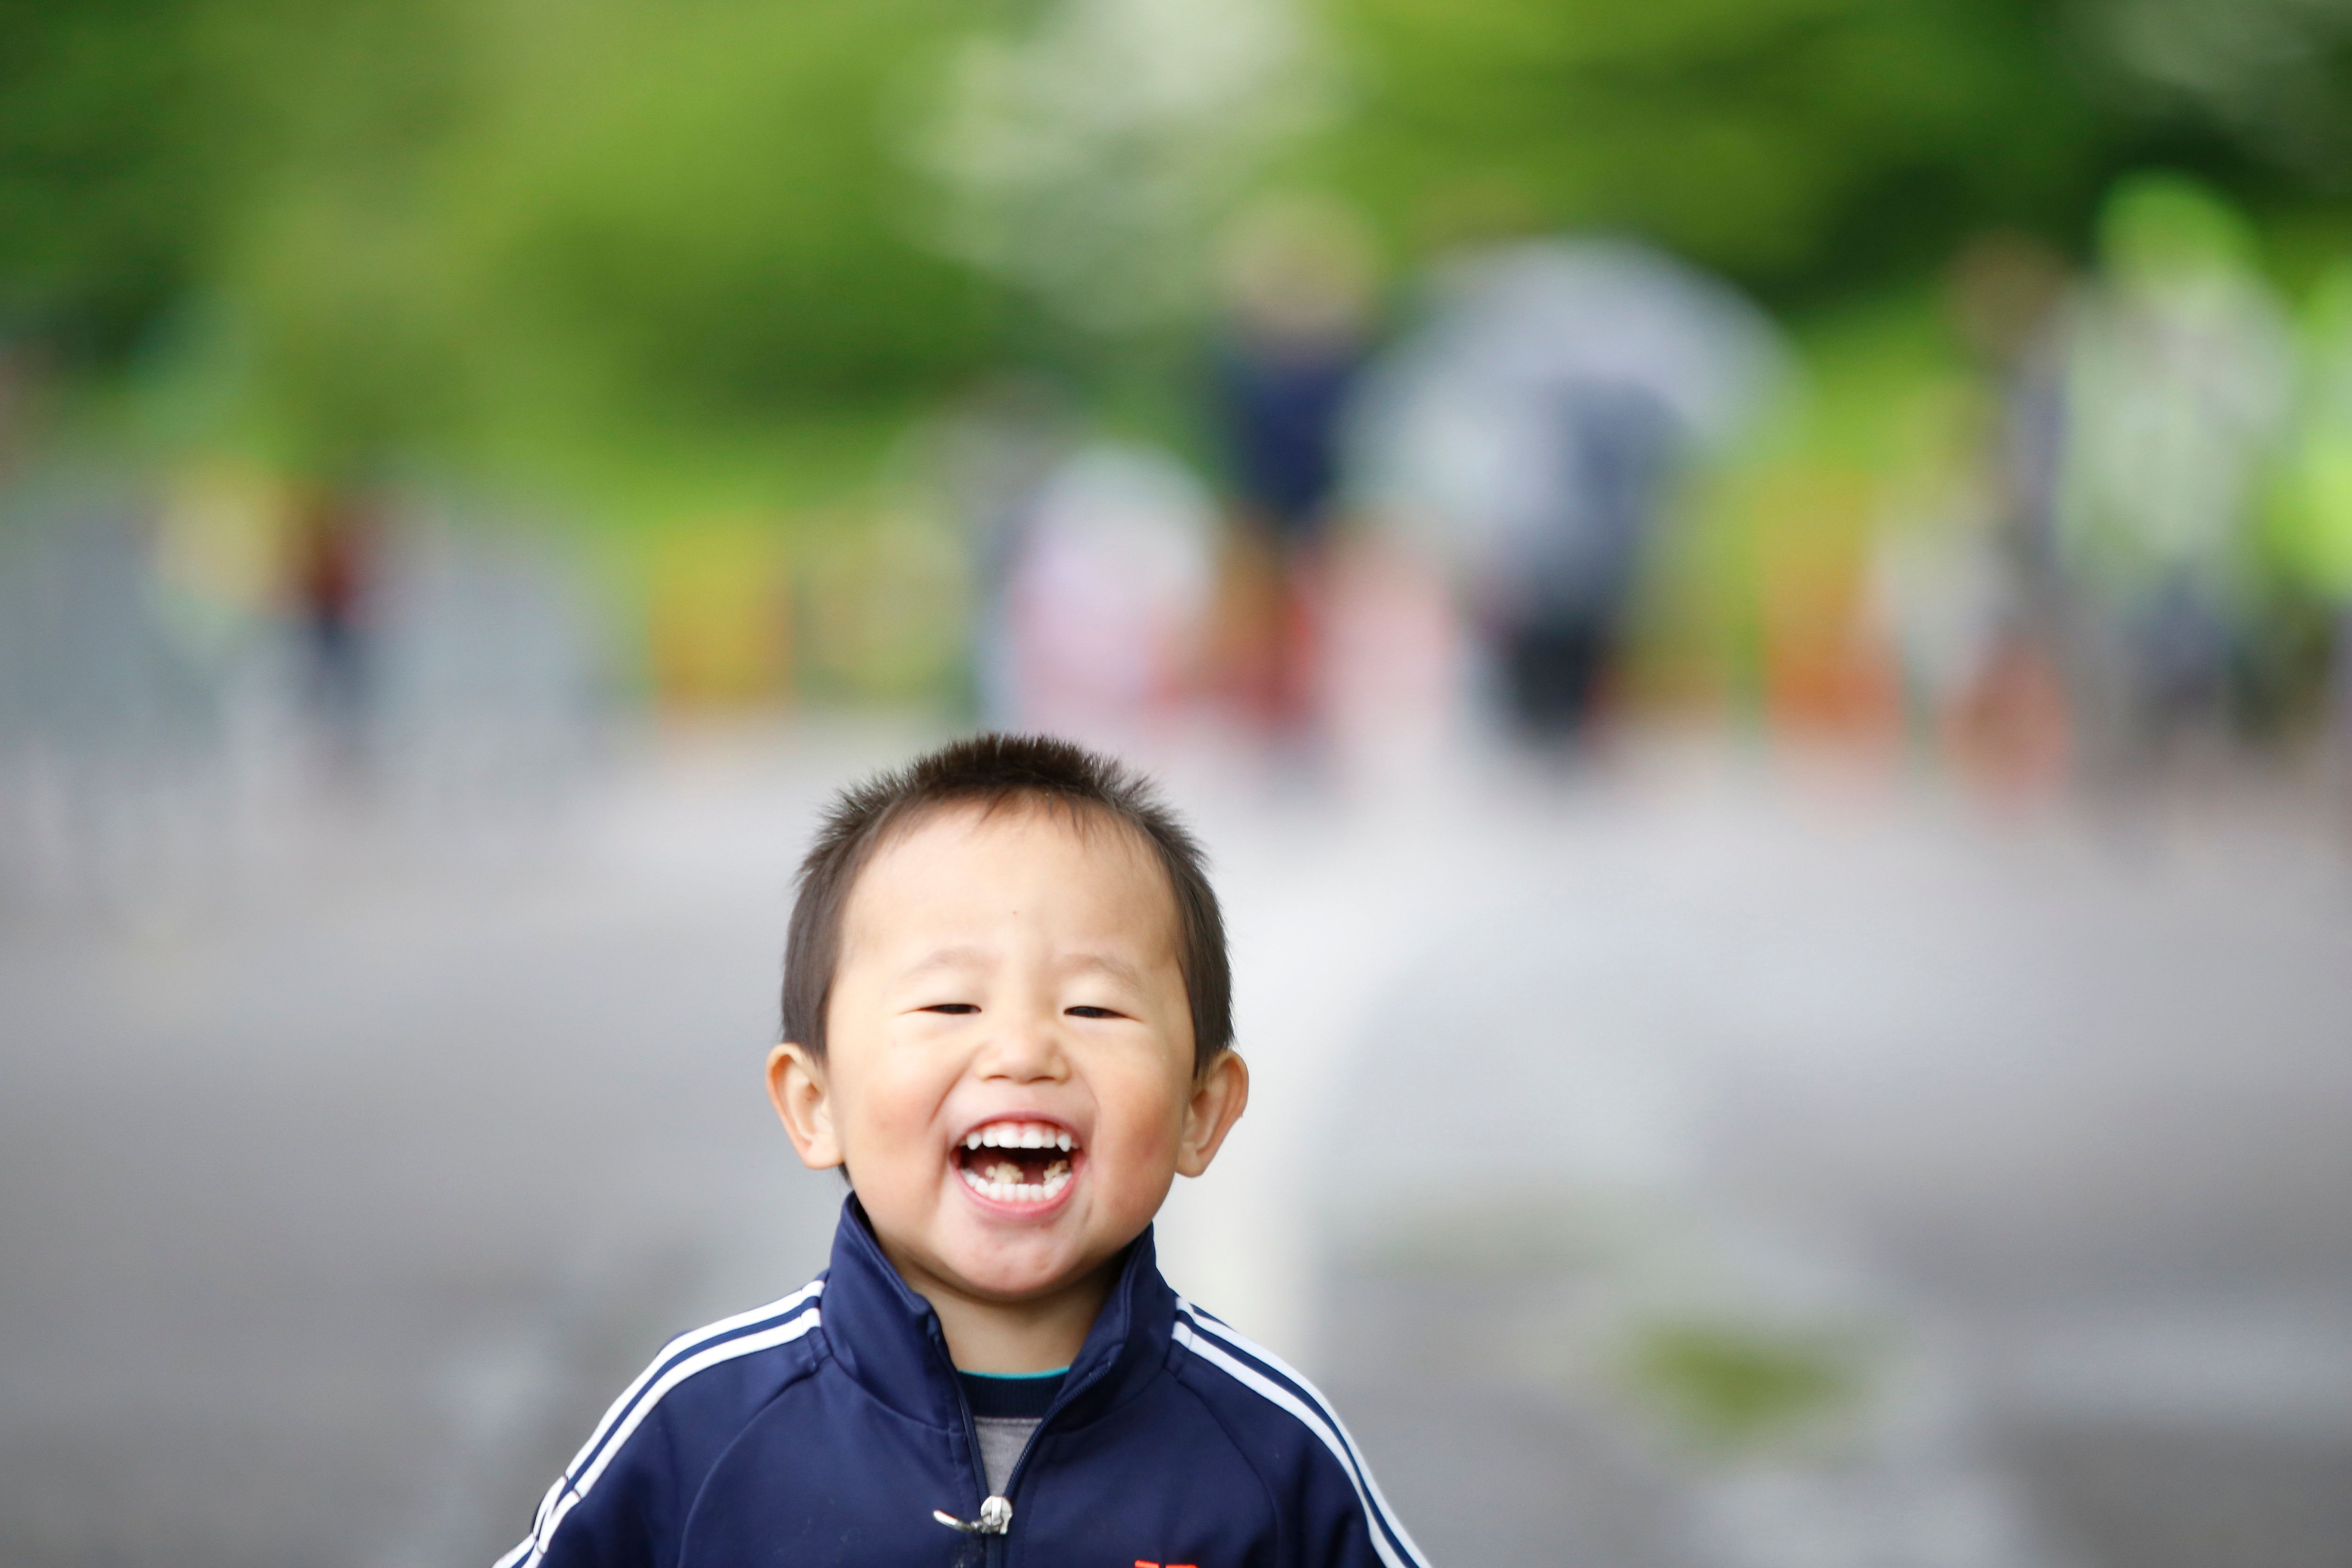 MANHATTAN, NEW YORK CITY, UNITED STATES - 2016/05/08: Toddler joyful at completing first leg of race solo. Early am rain abated in time for the tenth annual Japan Day in Central Park that included a Kids' Run sponsored by New York Road Runners, exhibits of Japanese craft & food. (Photo by Andy Katz/Pacific Press/LightRocket via Getty Images)